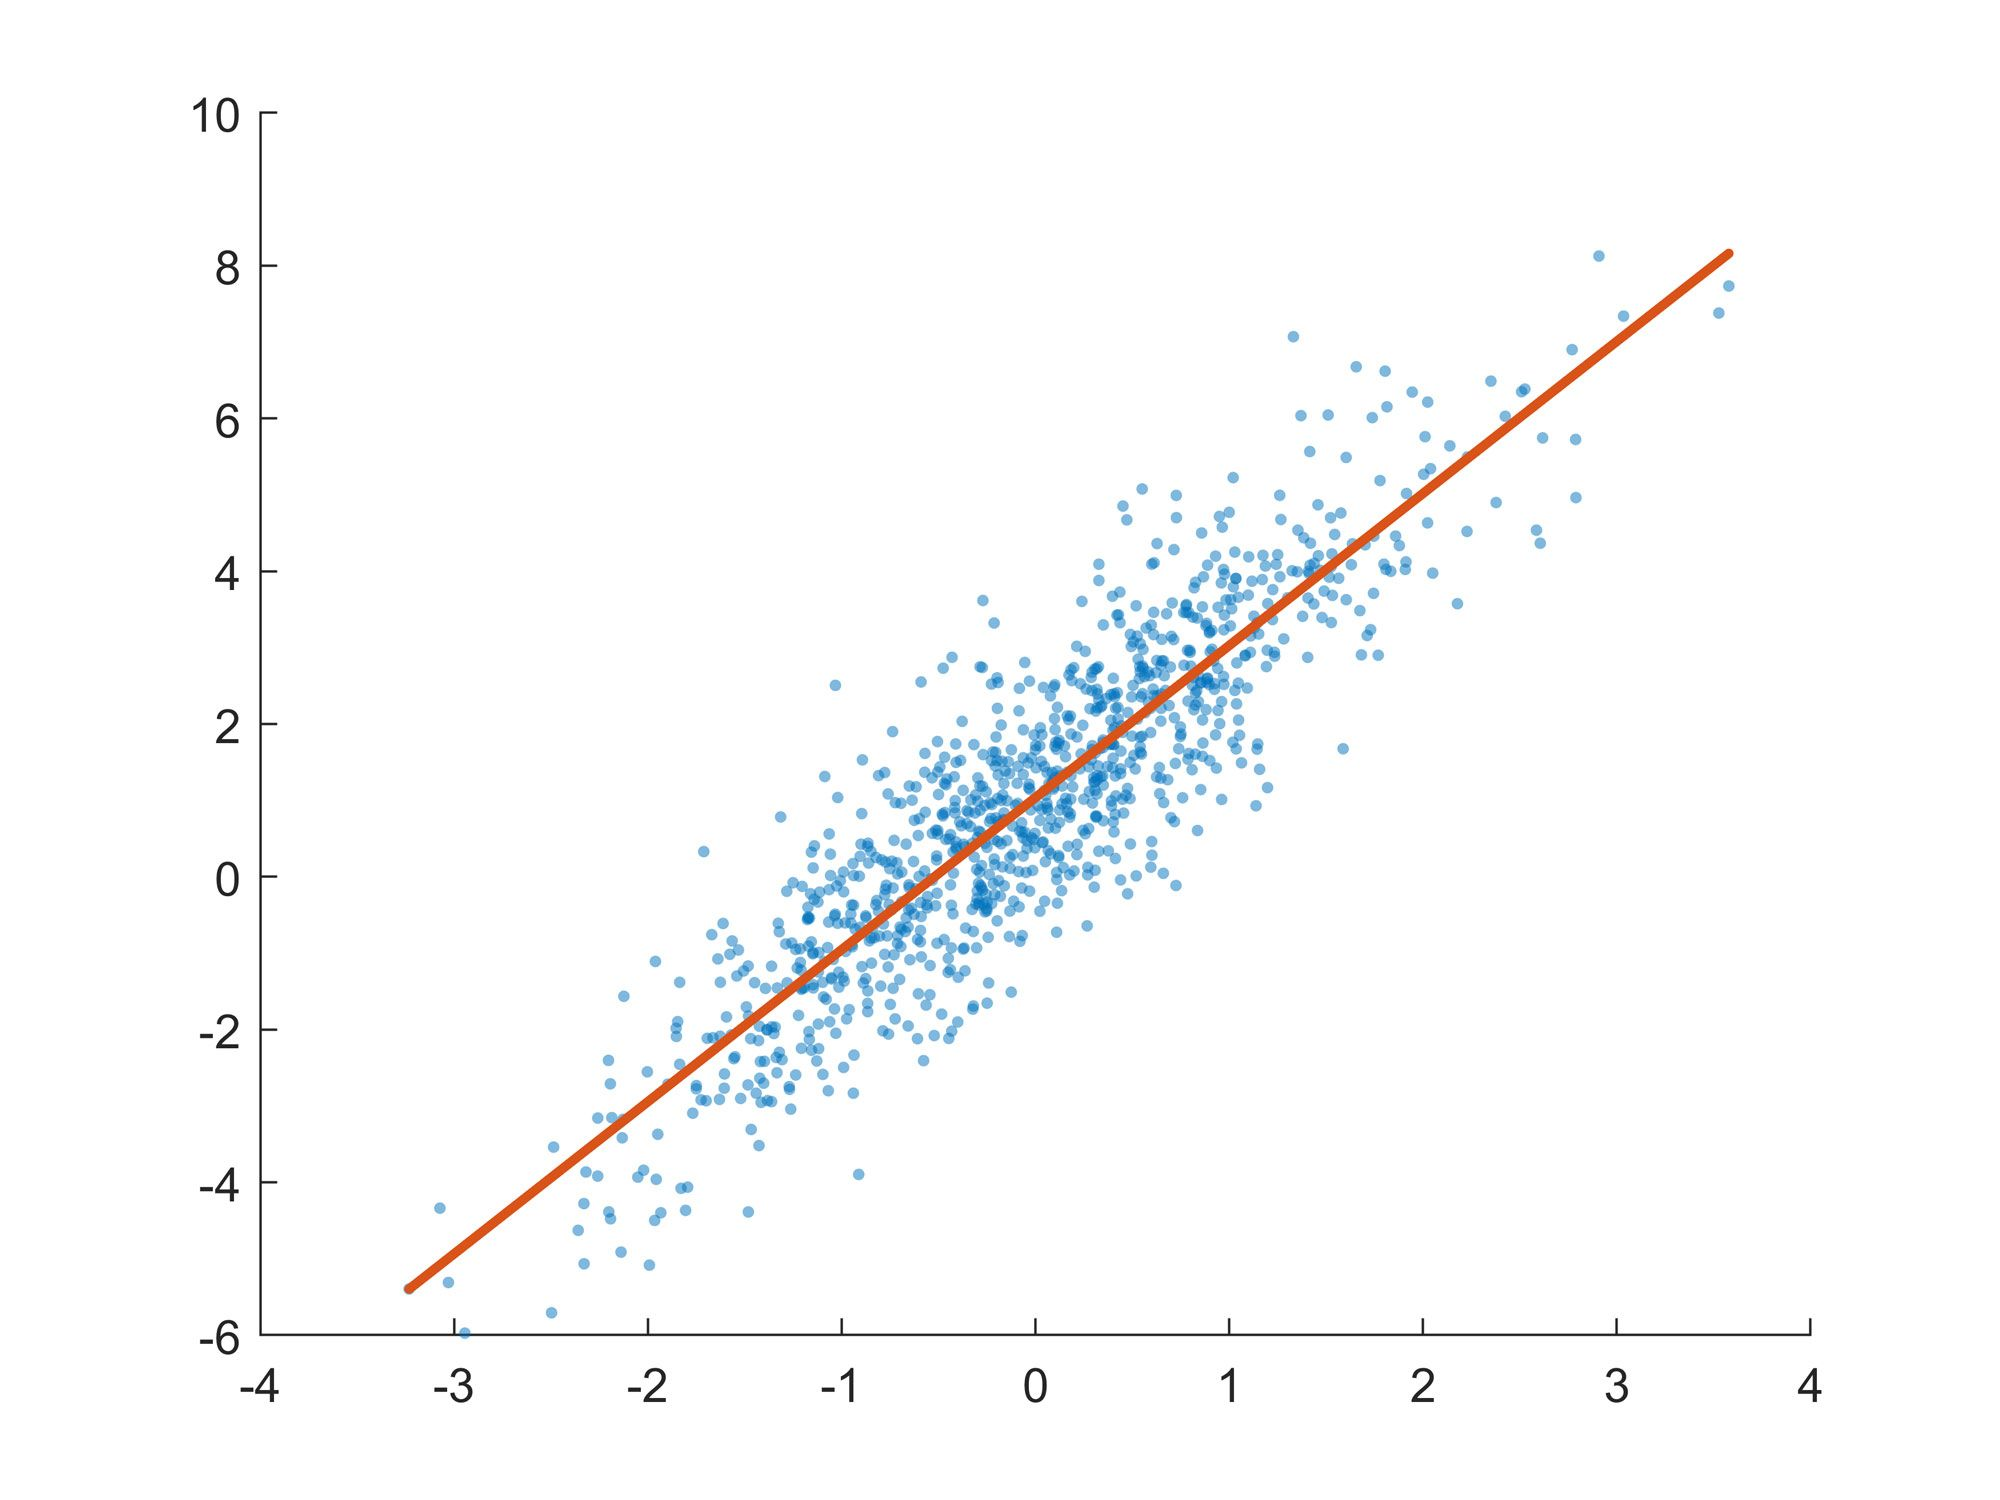 Figure 3. Best-fit line and the underlying scattered data.